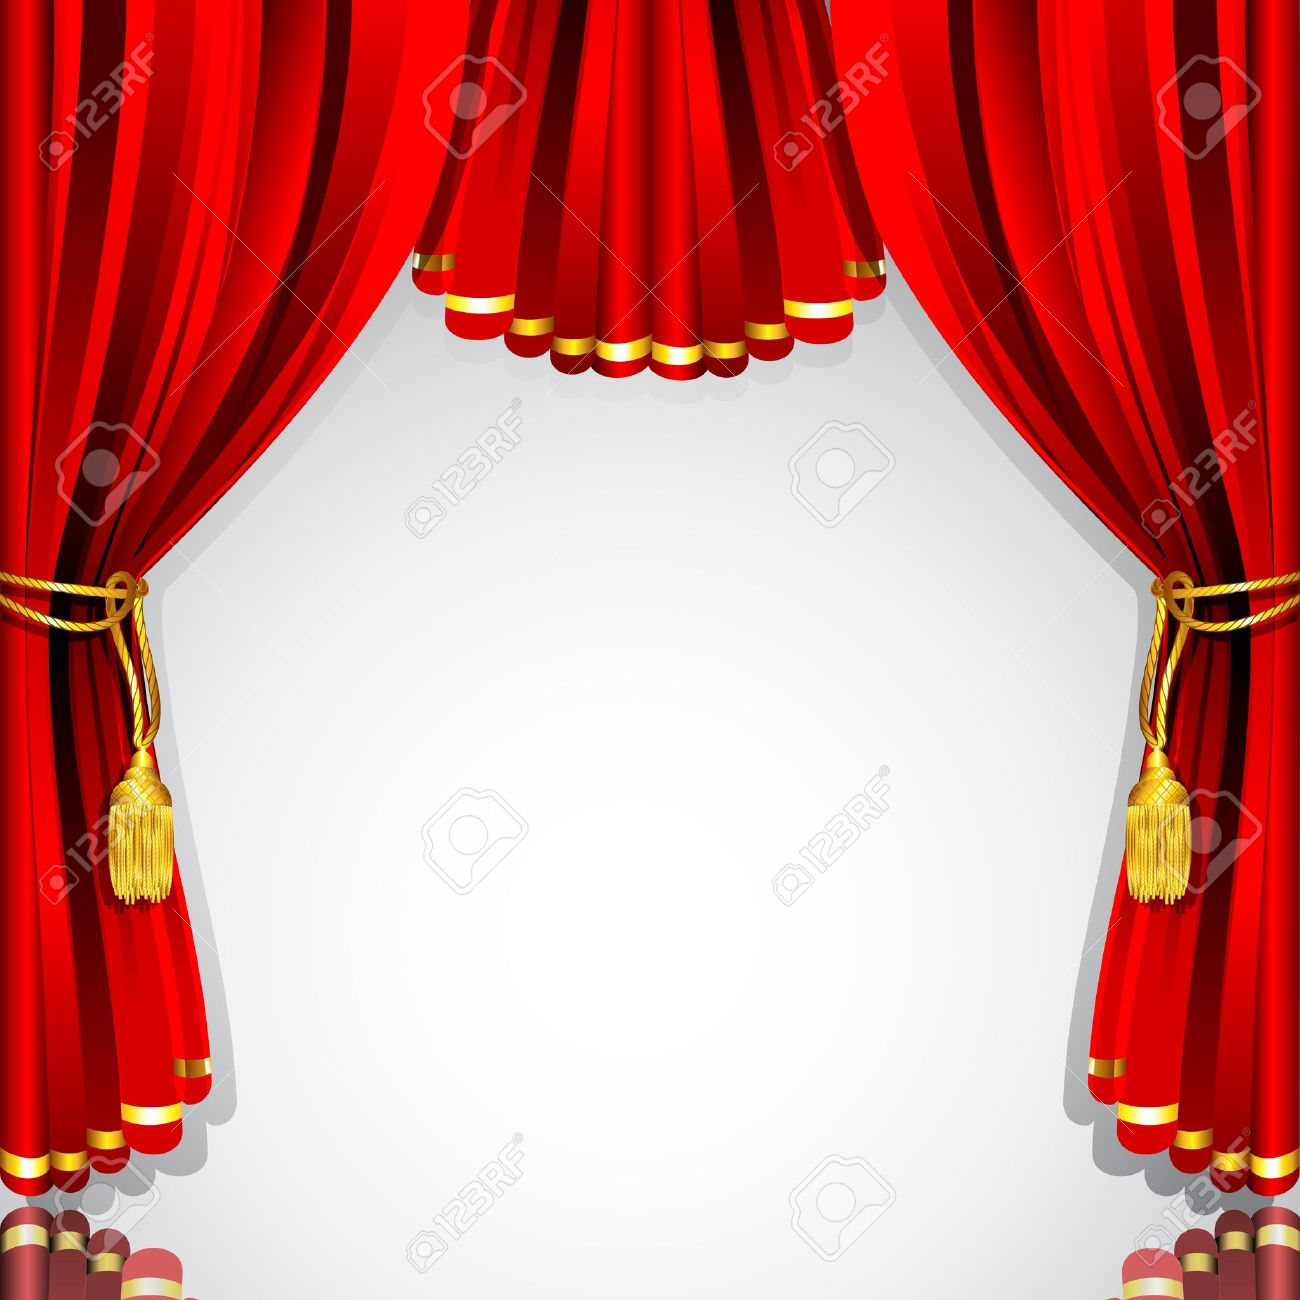 Theatre curtains png - Red Curtain Background Seamless Curtain Design Illustration Of Red Stage Curtain Drape On White Background